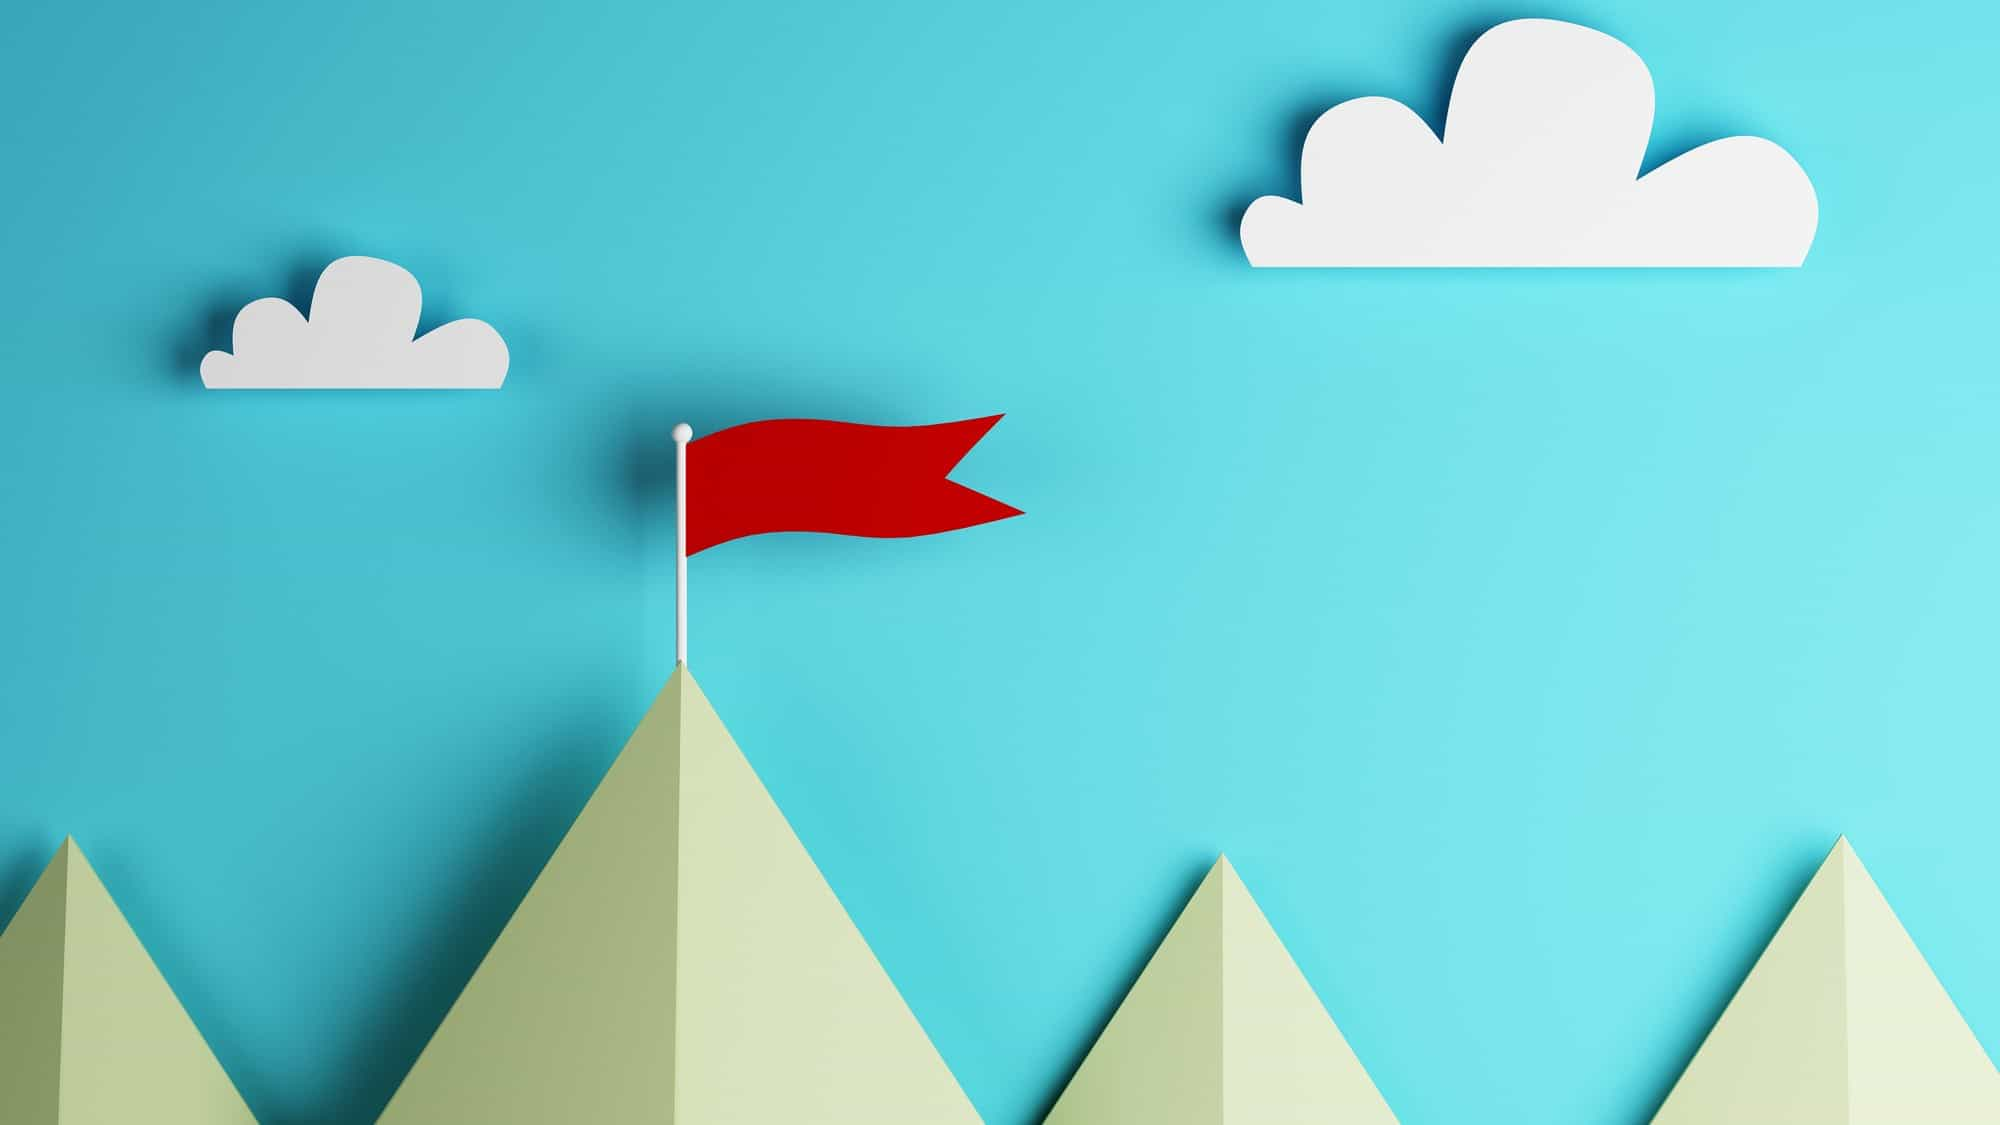 Top asx share price represented by paper cutout image of mountain peaks with red flag